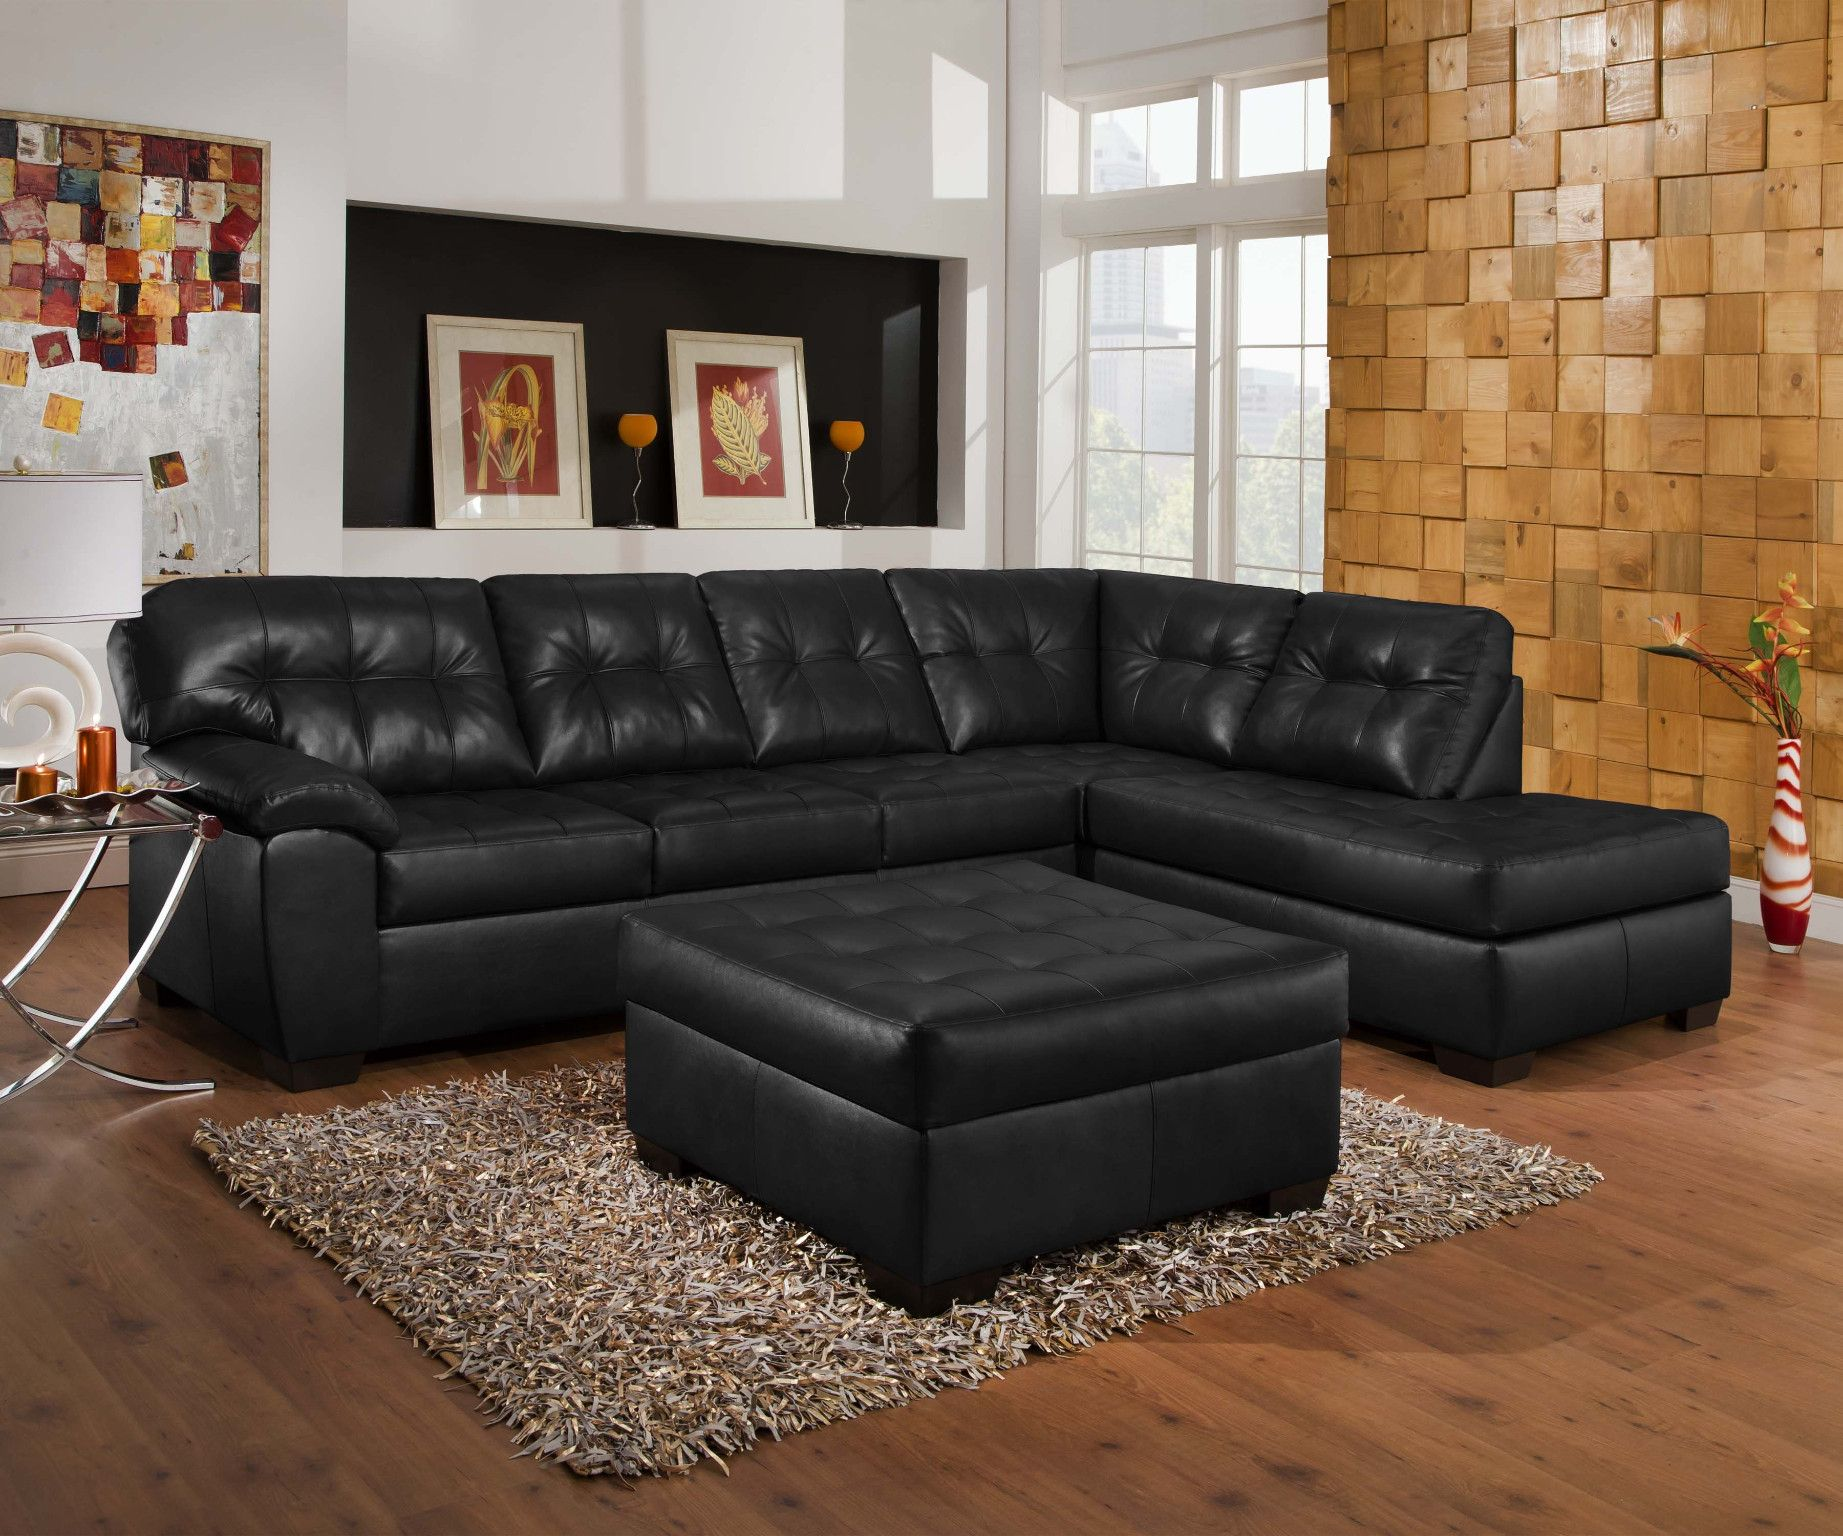 2 Piece Sectional Sofa In Soho Onyx Breathable Black Bonded Leather 899 00 Sofa Red Sectional Sofa Red Leather Sofa Sectional Sectional Sofa With Chaise